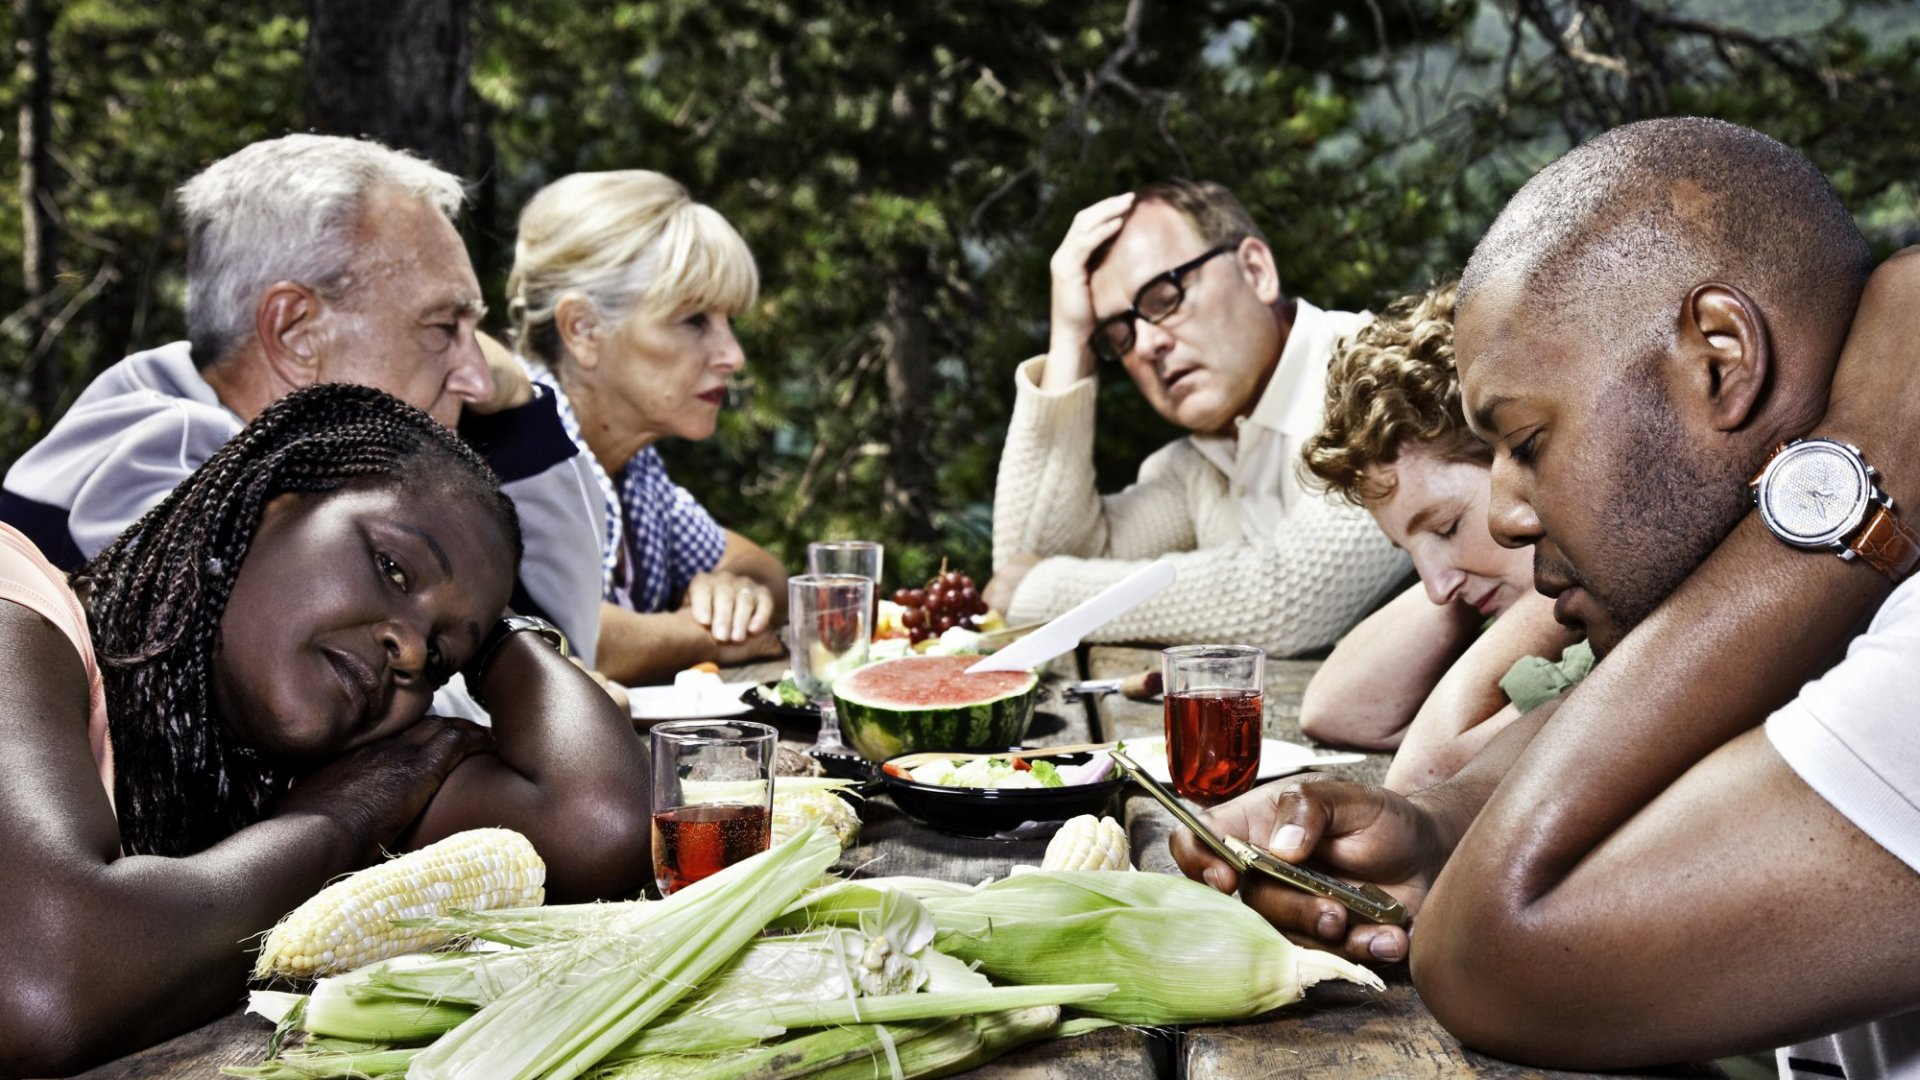 9 Reasons Not to Treat Your Business Like a Family